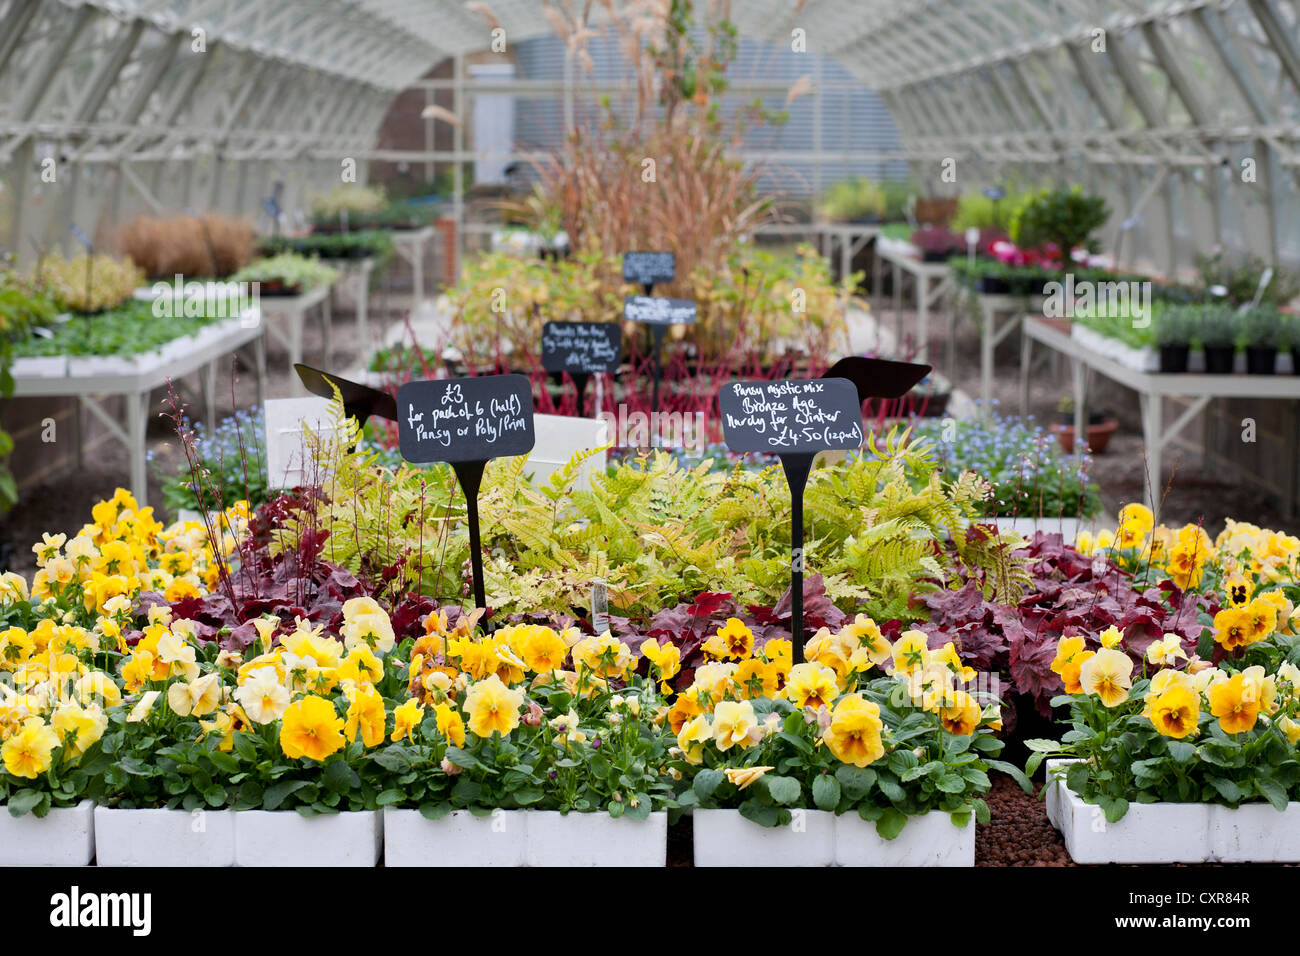 Pansies in trays for sale in a garden center nursery - Stock Image